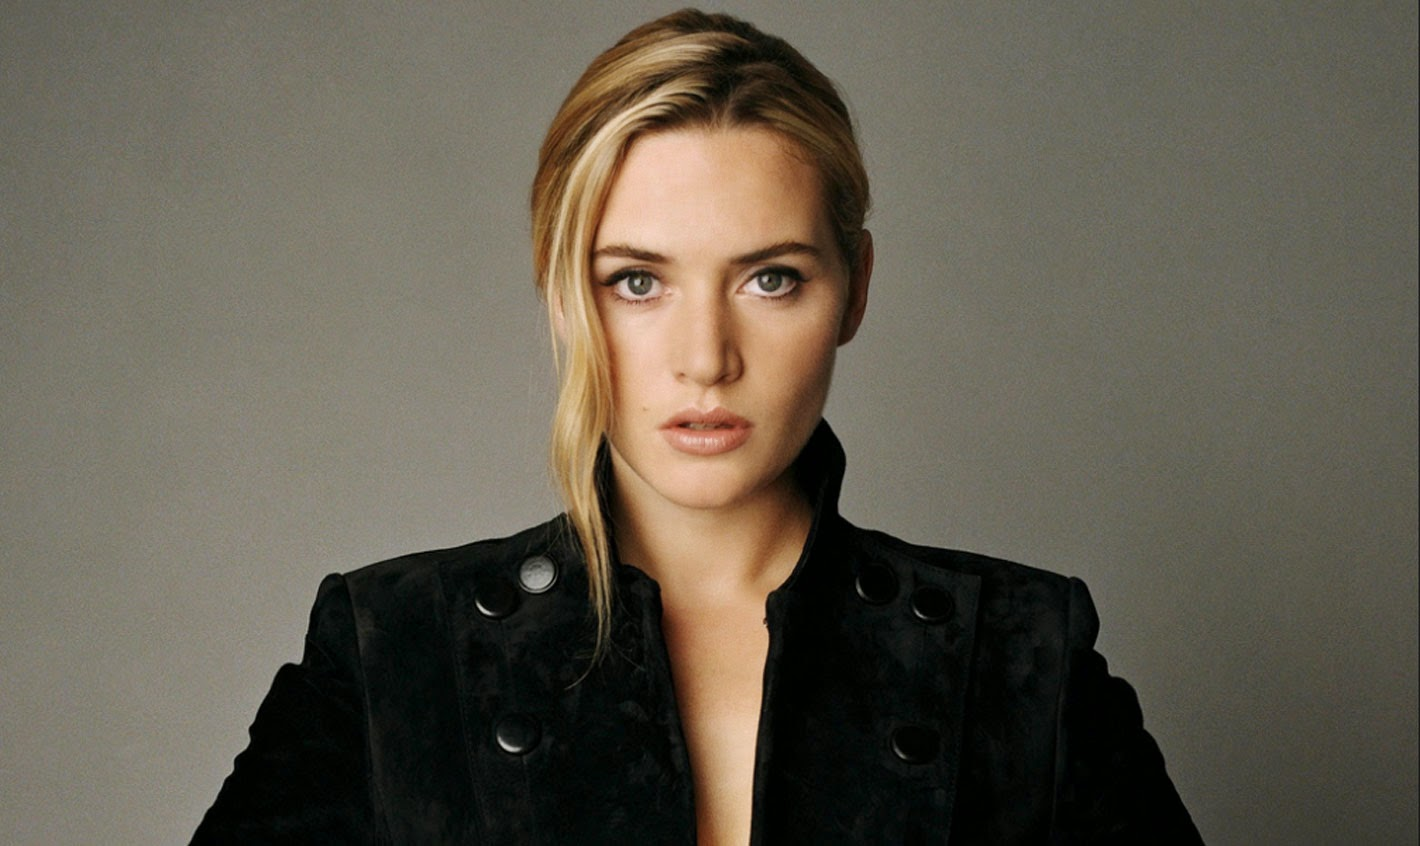 Beautiful Kate Winslet in Black Dress Wallpaper